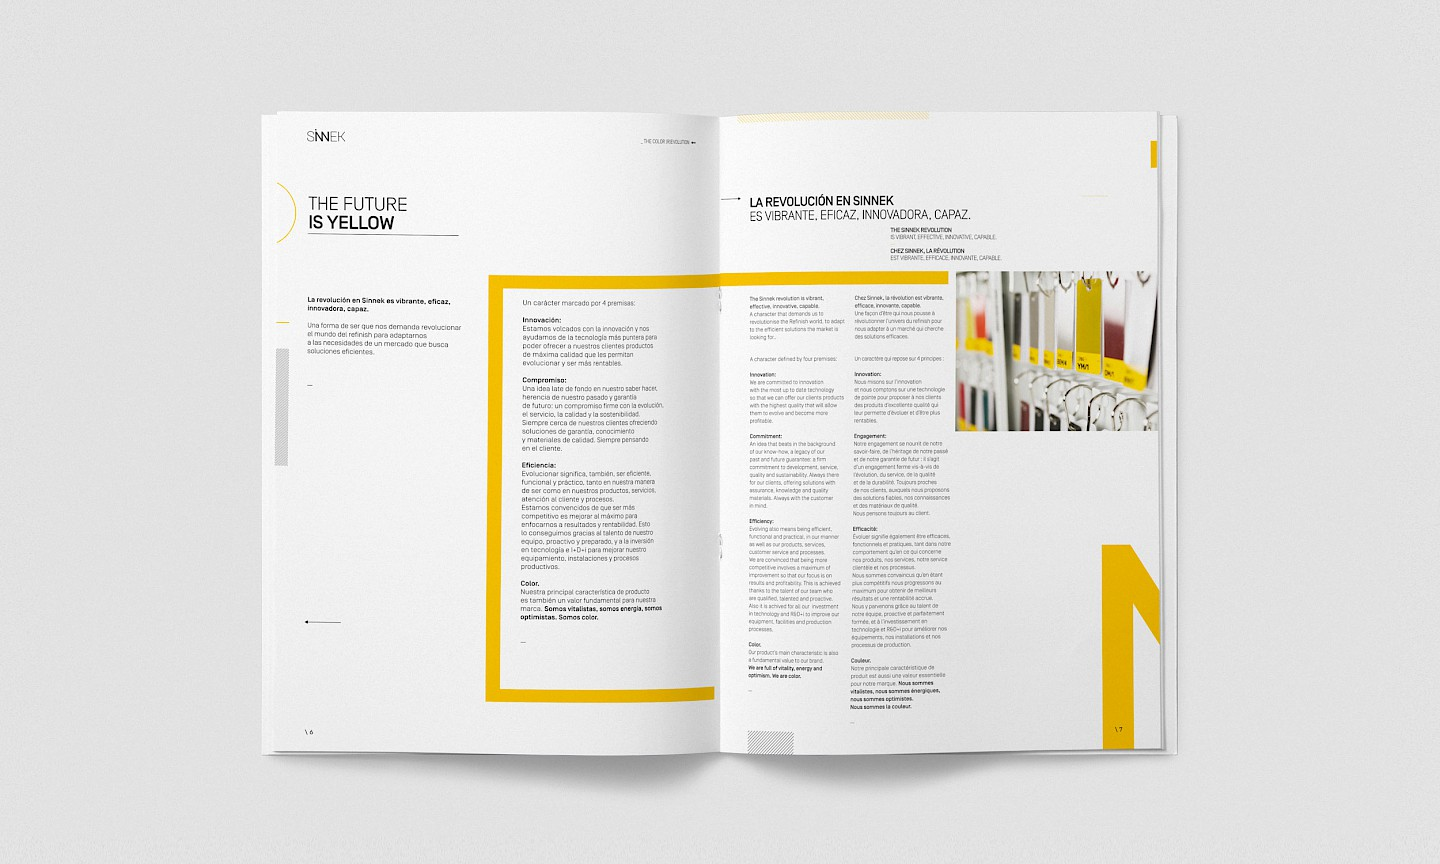 move catalogo01 sinnek branding